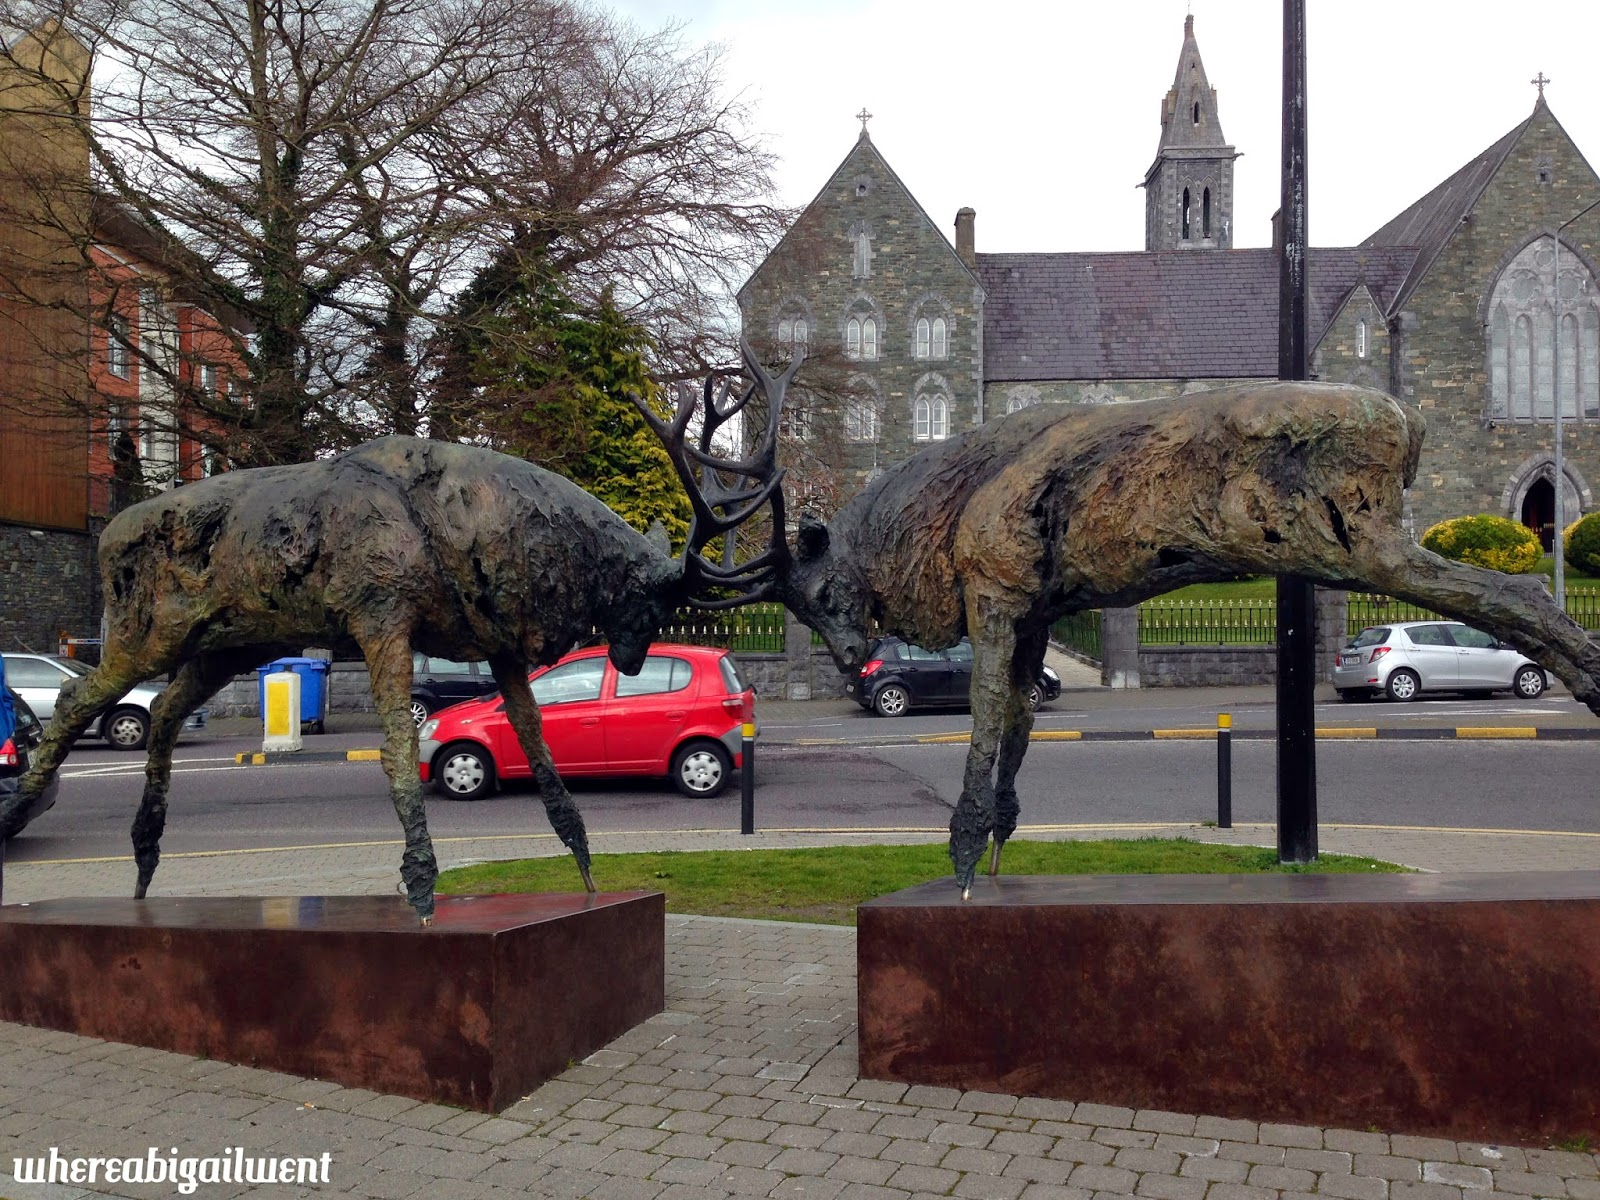 Stags fighting statue Killarney